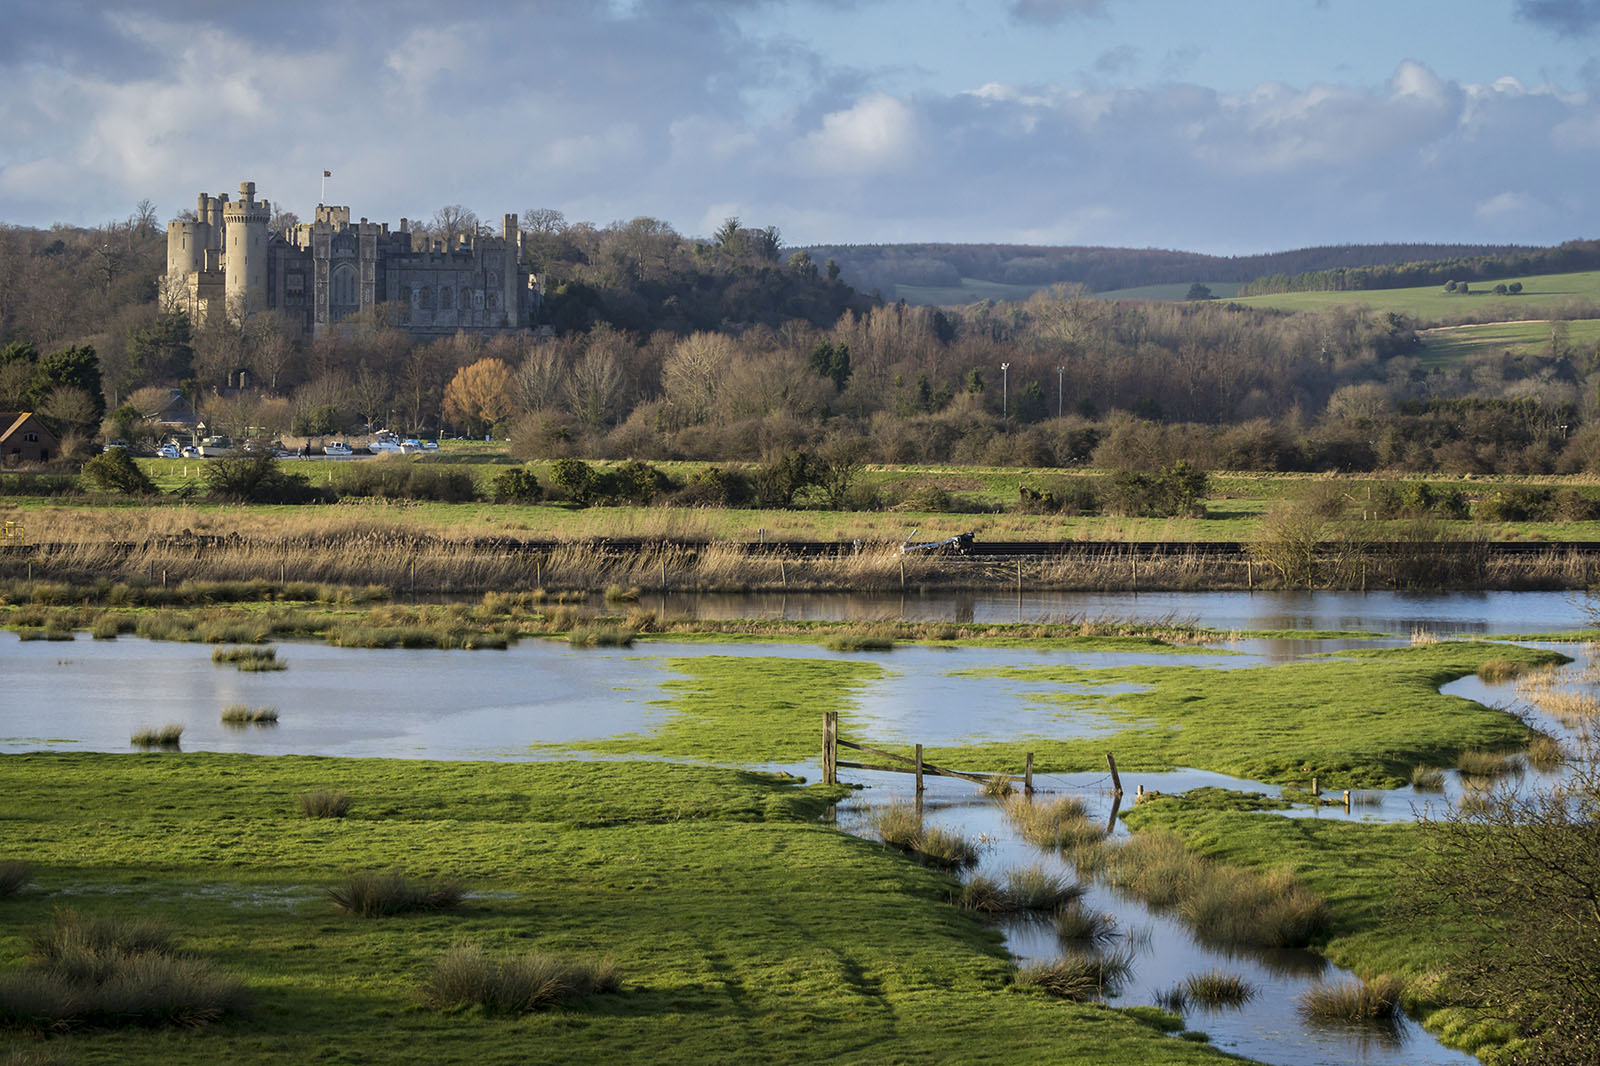 Arundel Castle, West Sussex, England. The river has flooded the fields.